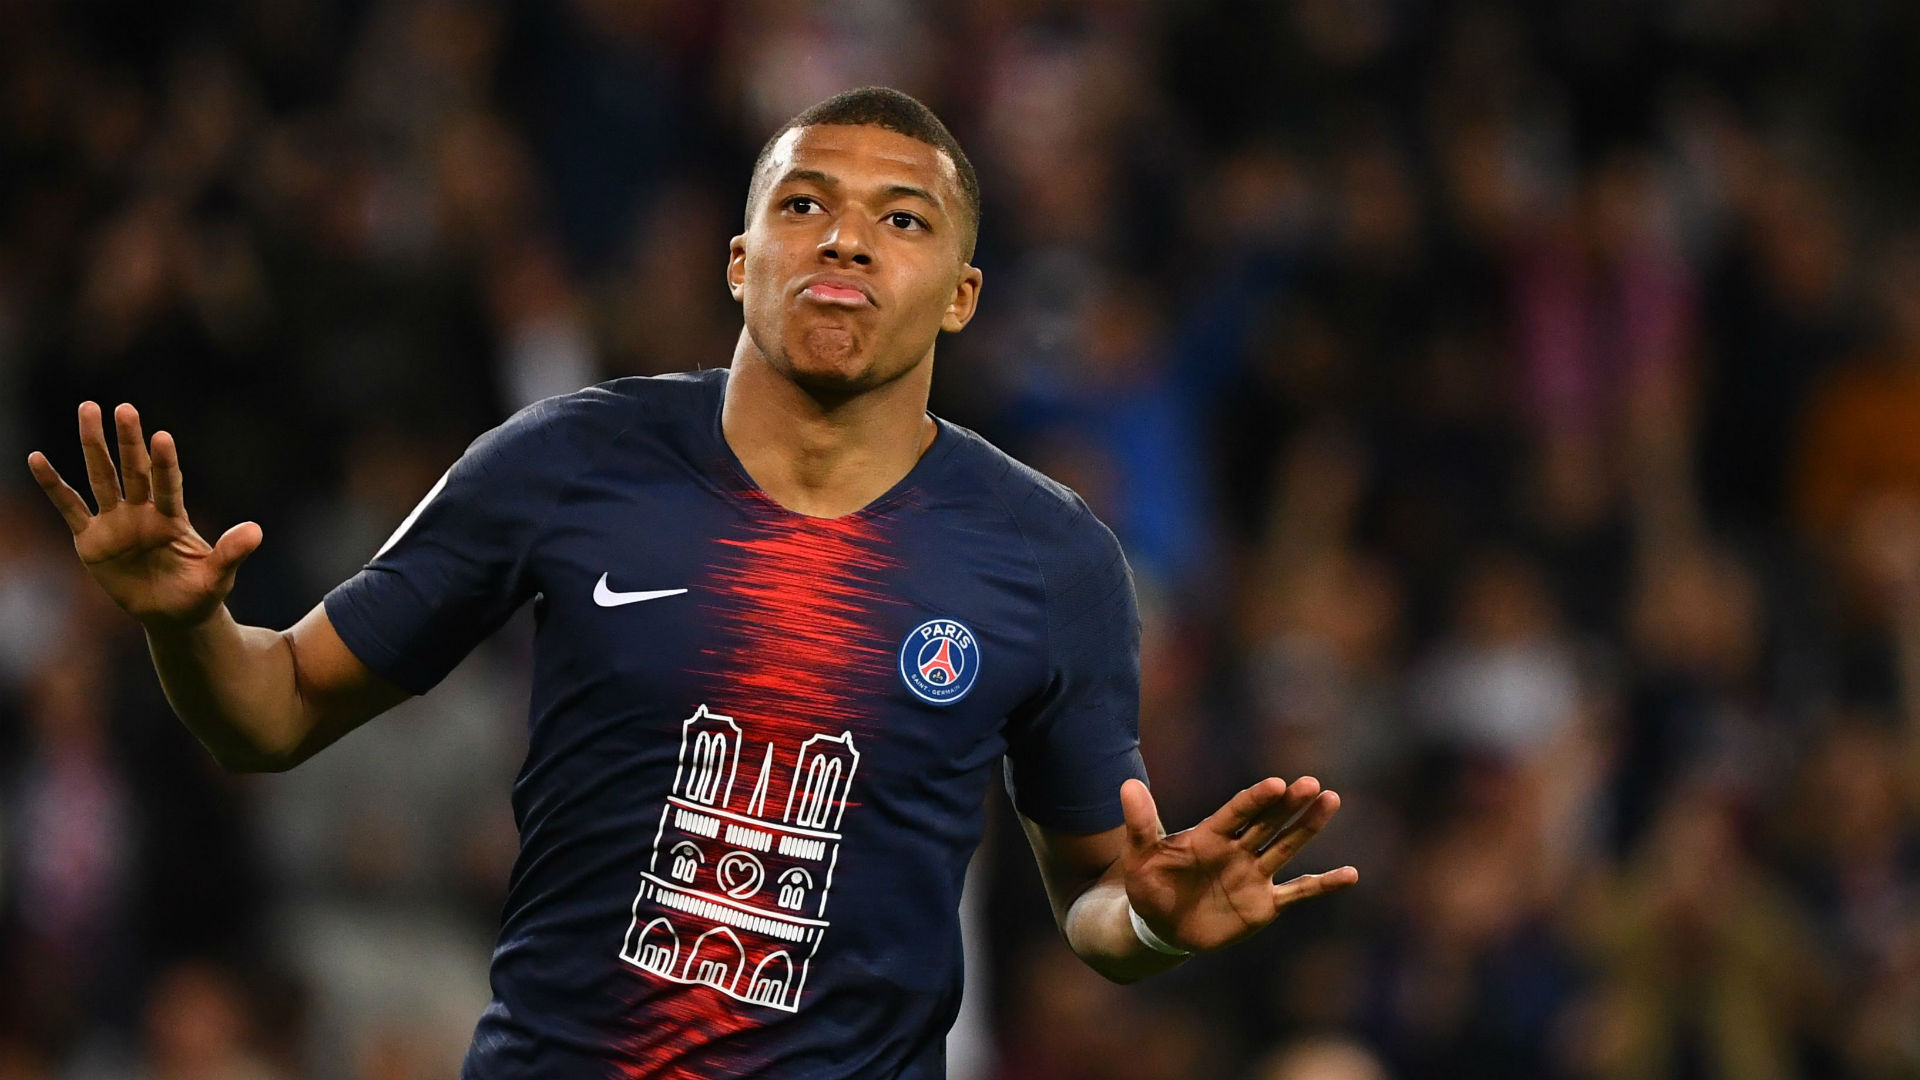 Ronaldo, Messi, Mbappe? Who is Europe's most prolific young goalscorer?